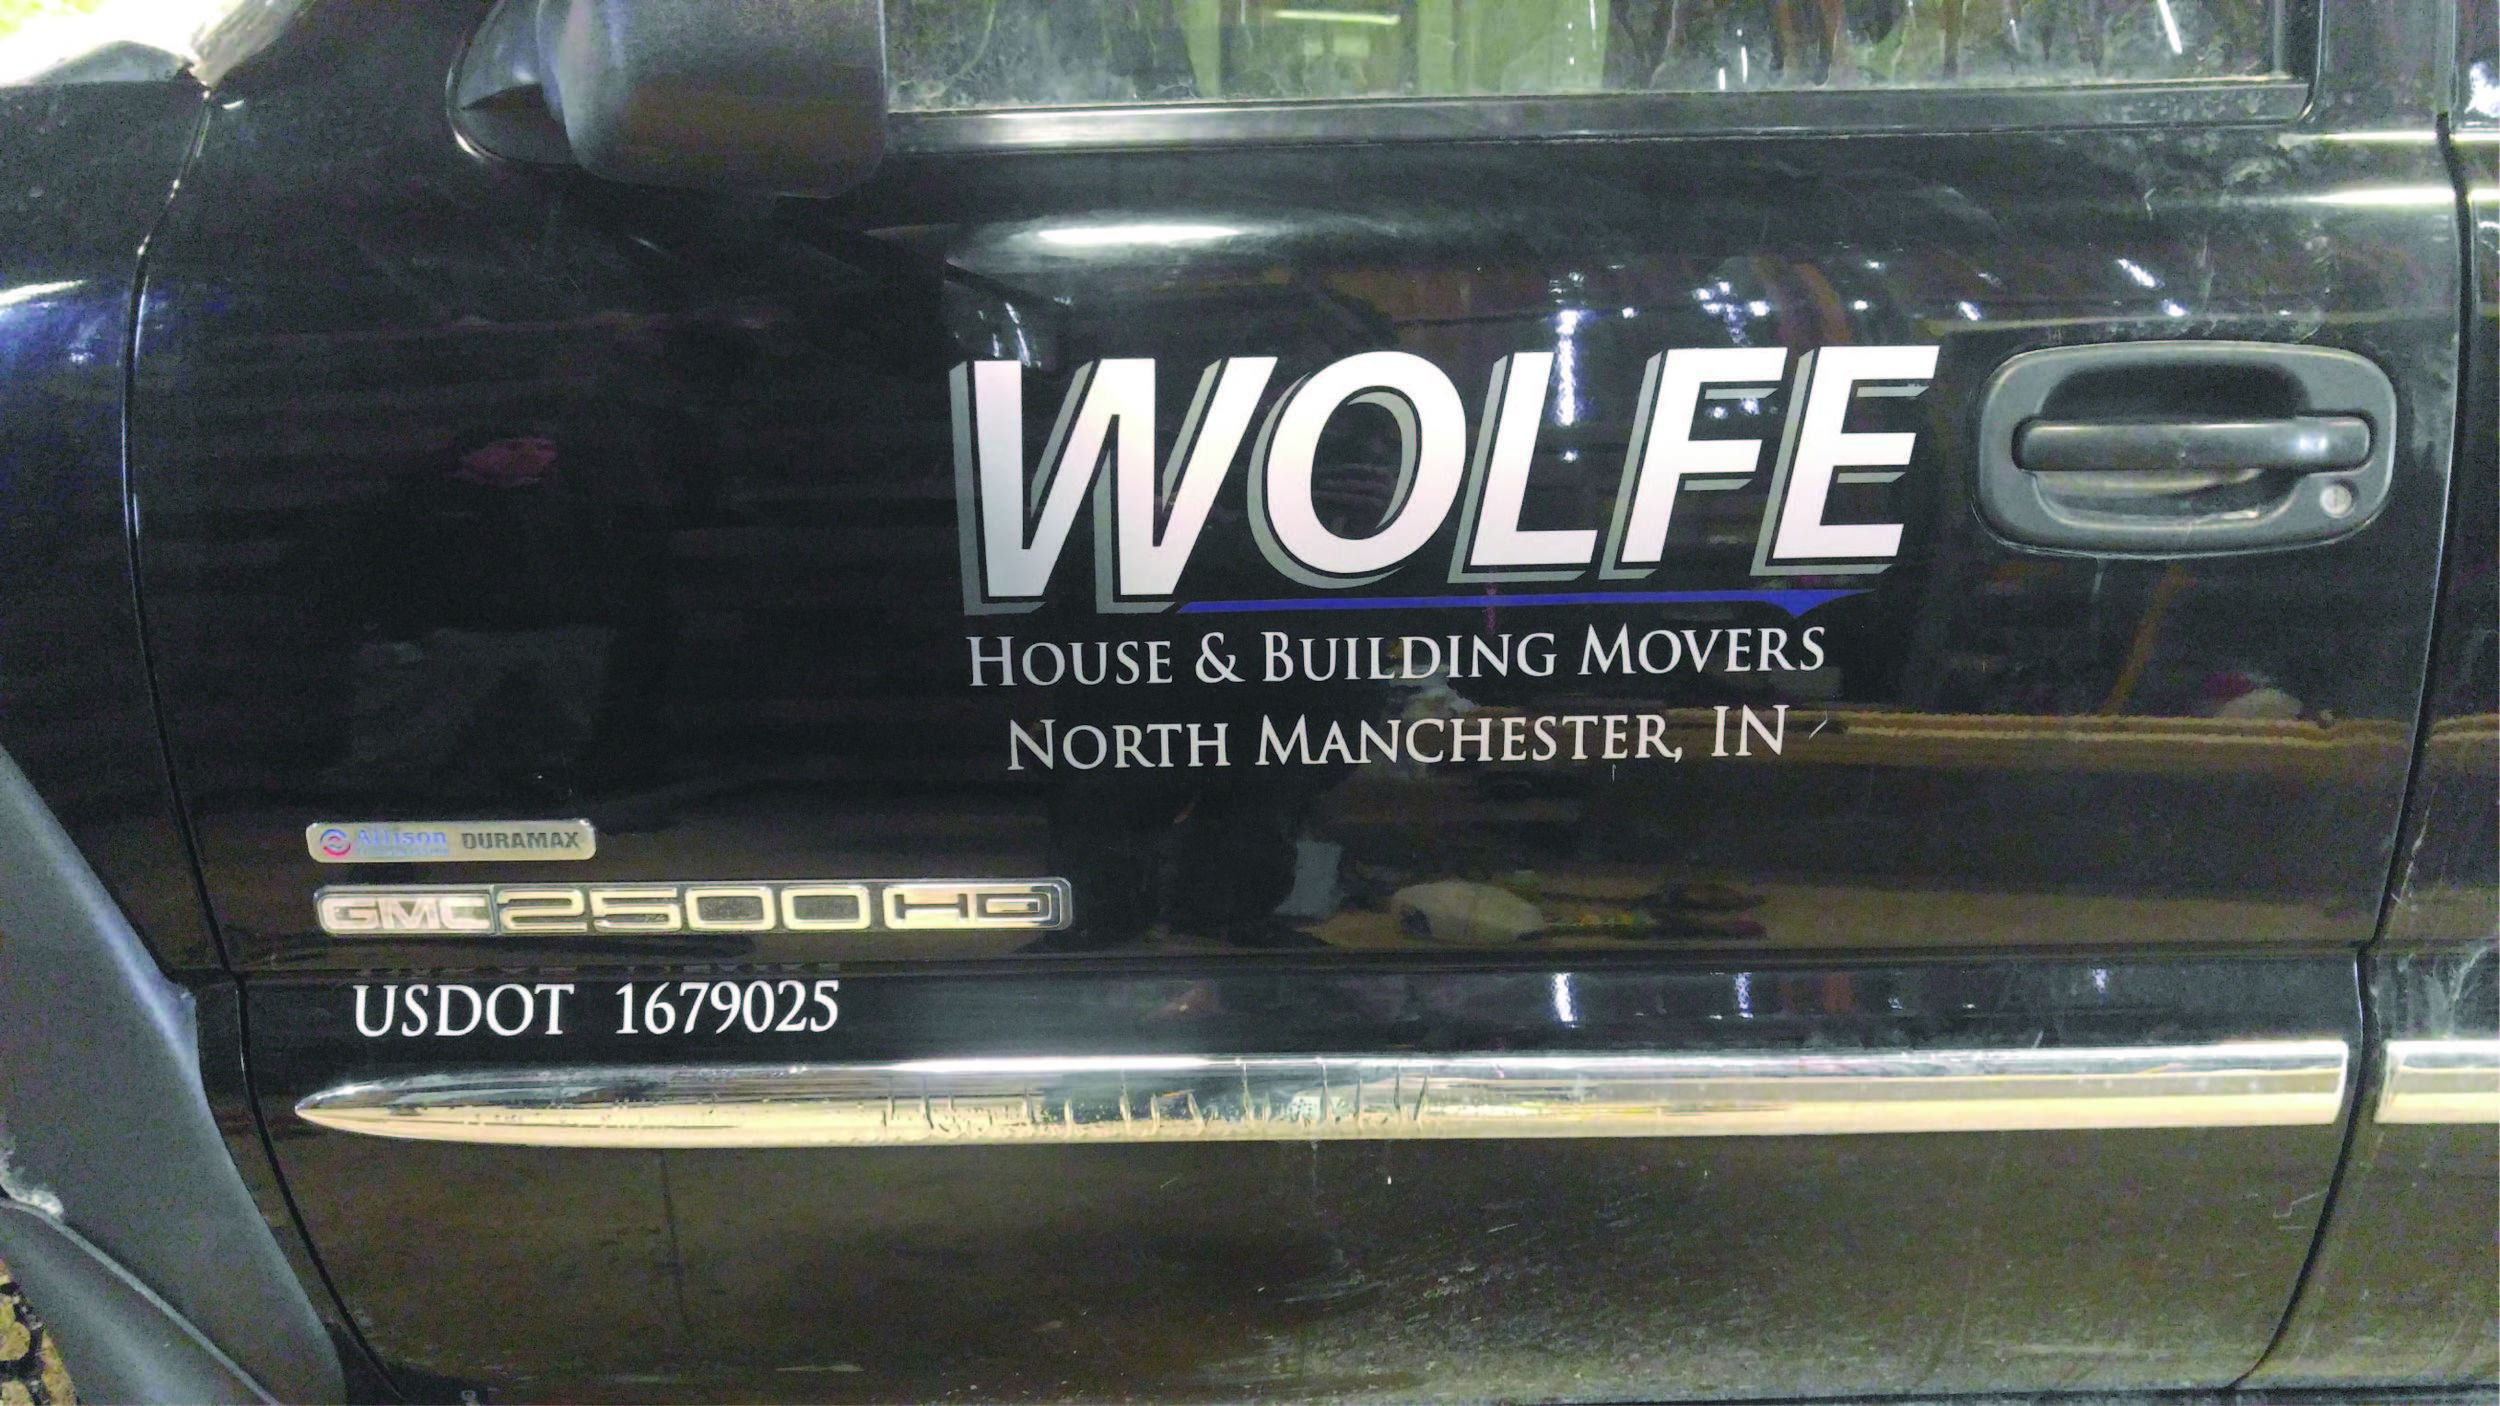 Wolfe House Movers North Manchester Indiana House Moving Company JPG.jpg